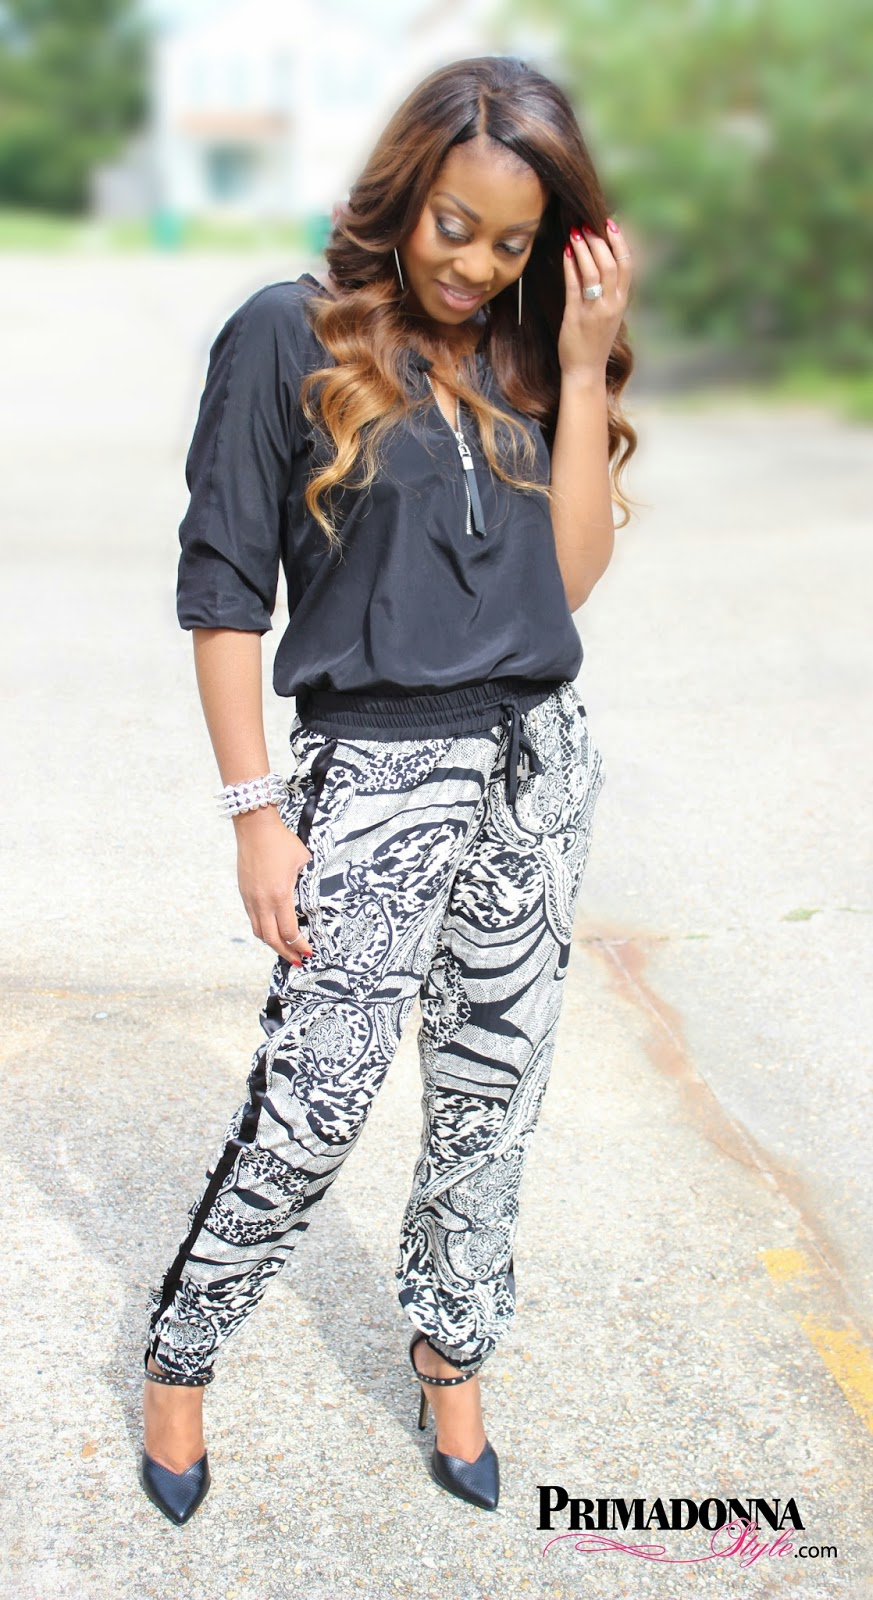 Jennifer Lopez 1/4 Zip Mixed Media Top  i jeans by Buffalo Soft Pant in Black/White Animal Print Rock & Republic Studded Ankle Strap High Heels Silver Spike Bracelet Custom Spiked Earrings